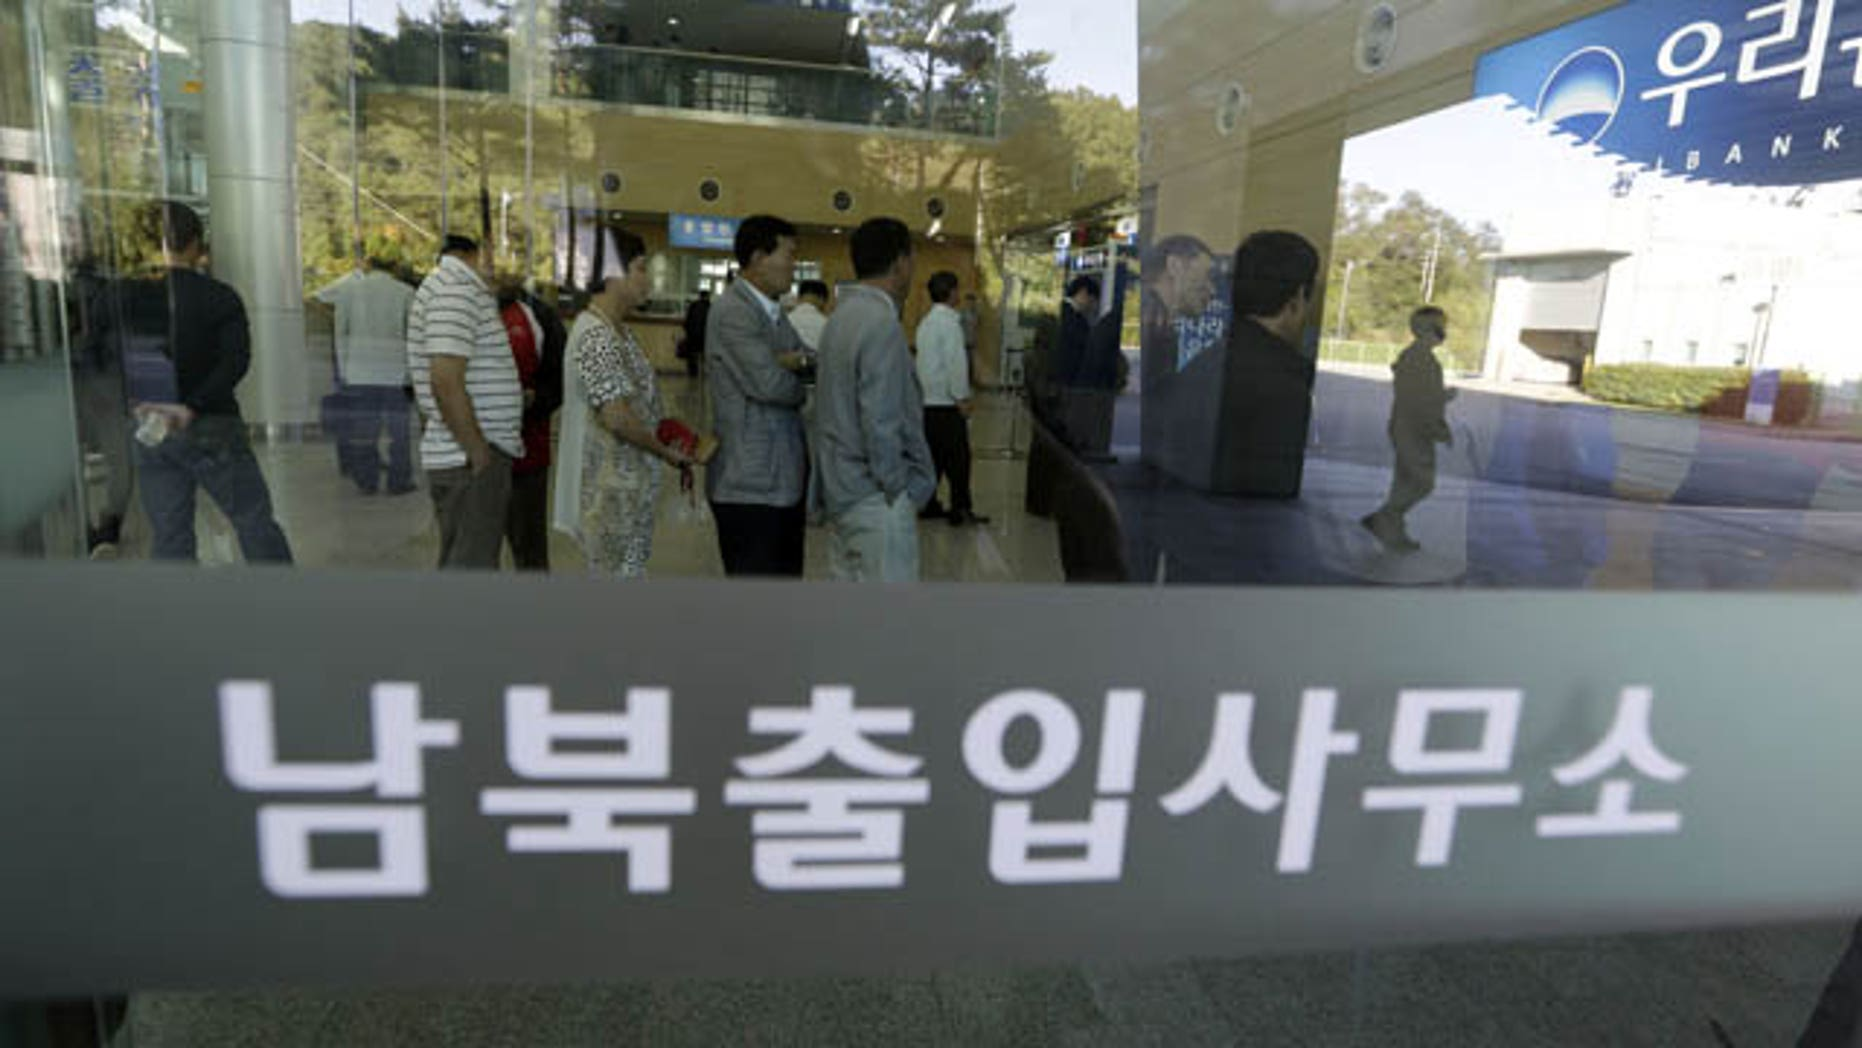 September 16, 2013: South Koreans wait in line to exchange money in front of a bank before leaving for the Kaesong Industrial Complex at the Inter-Korean Transit Office near the border village of Panmunjom, which has separated the two Koreas since the Korean War. (AP Photo)